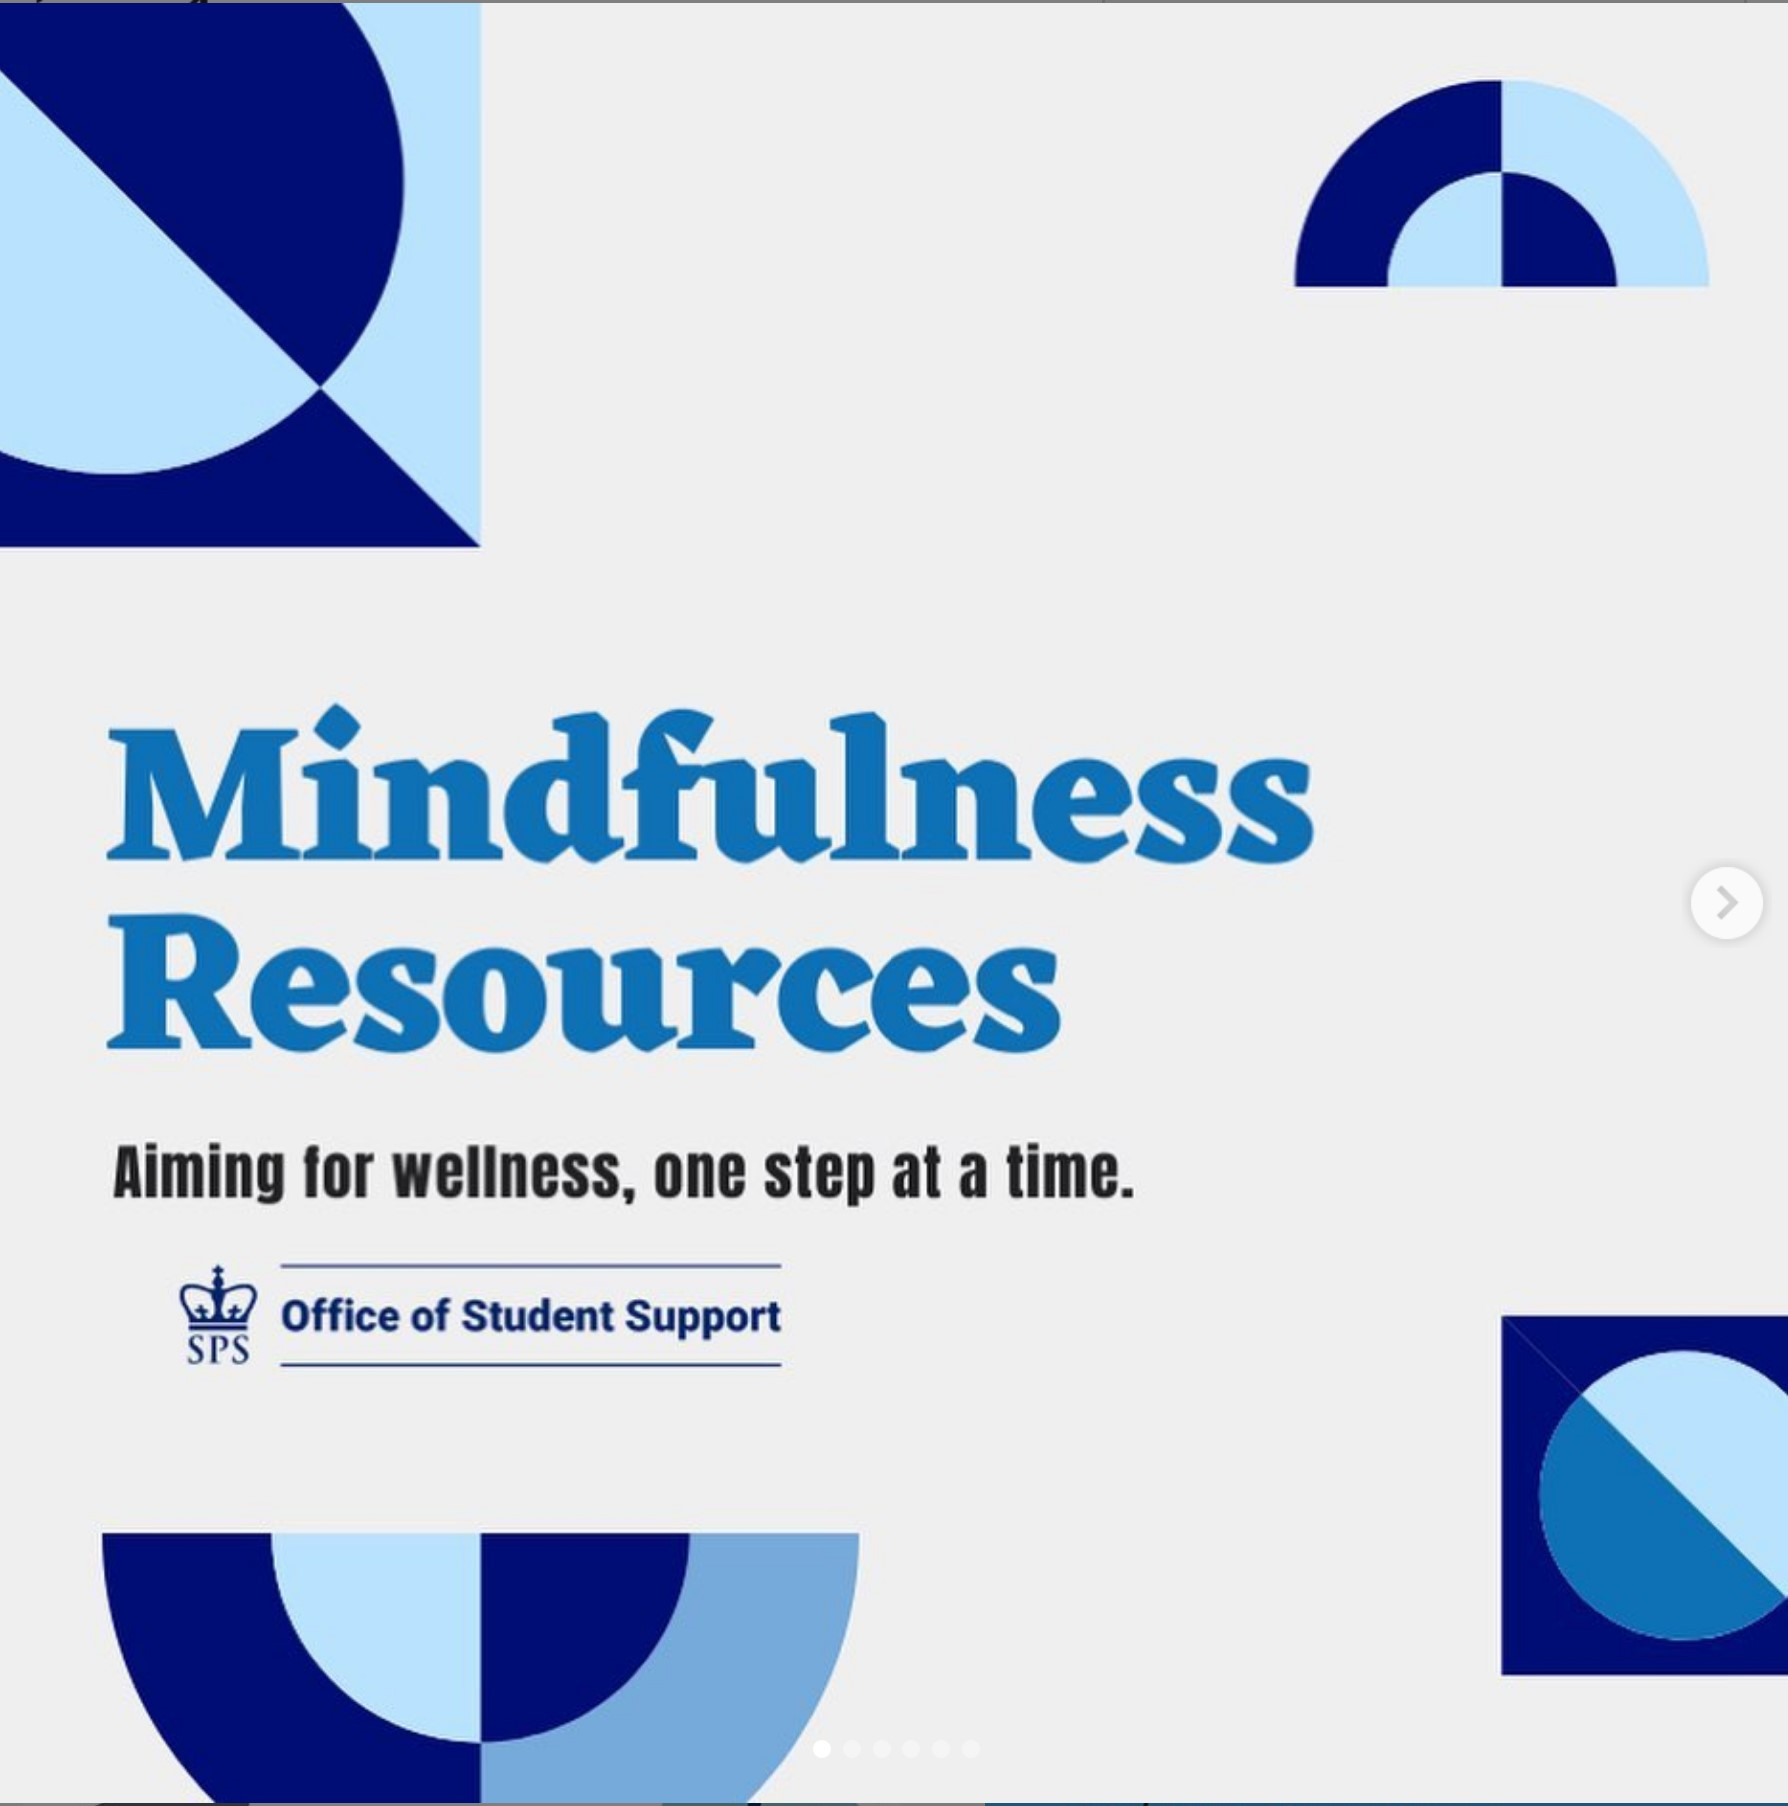 Mindfulness Resources thumbnail links to SPS Instagram post